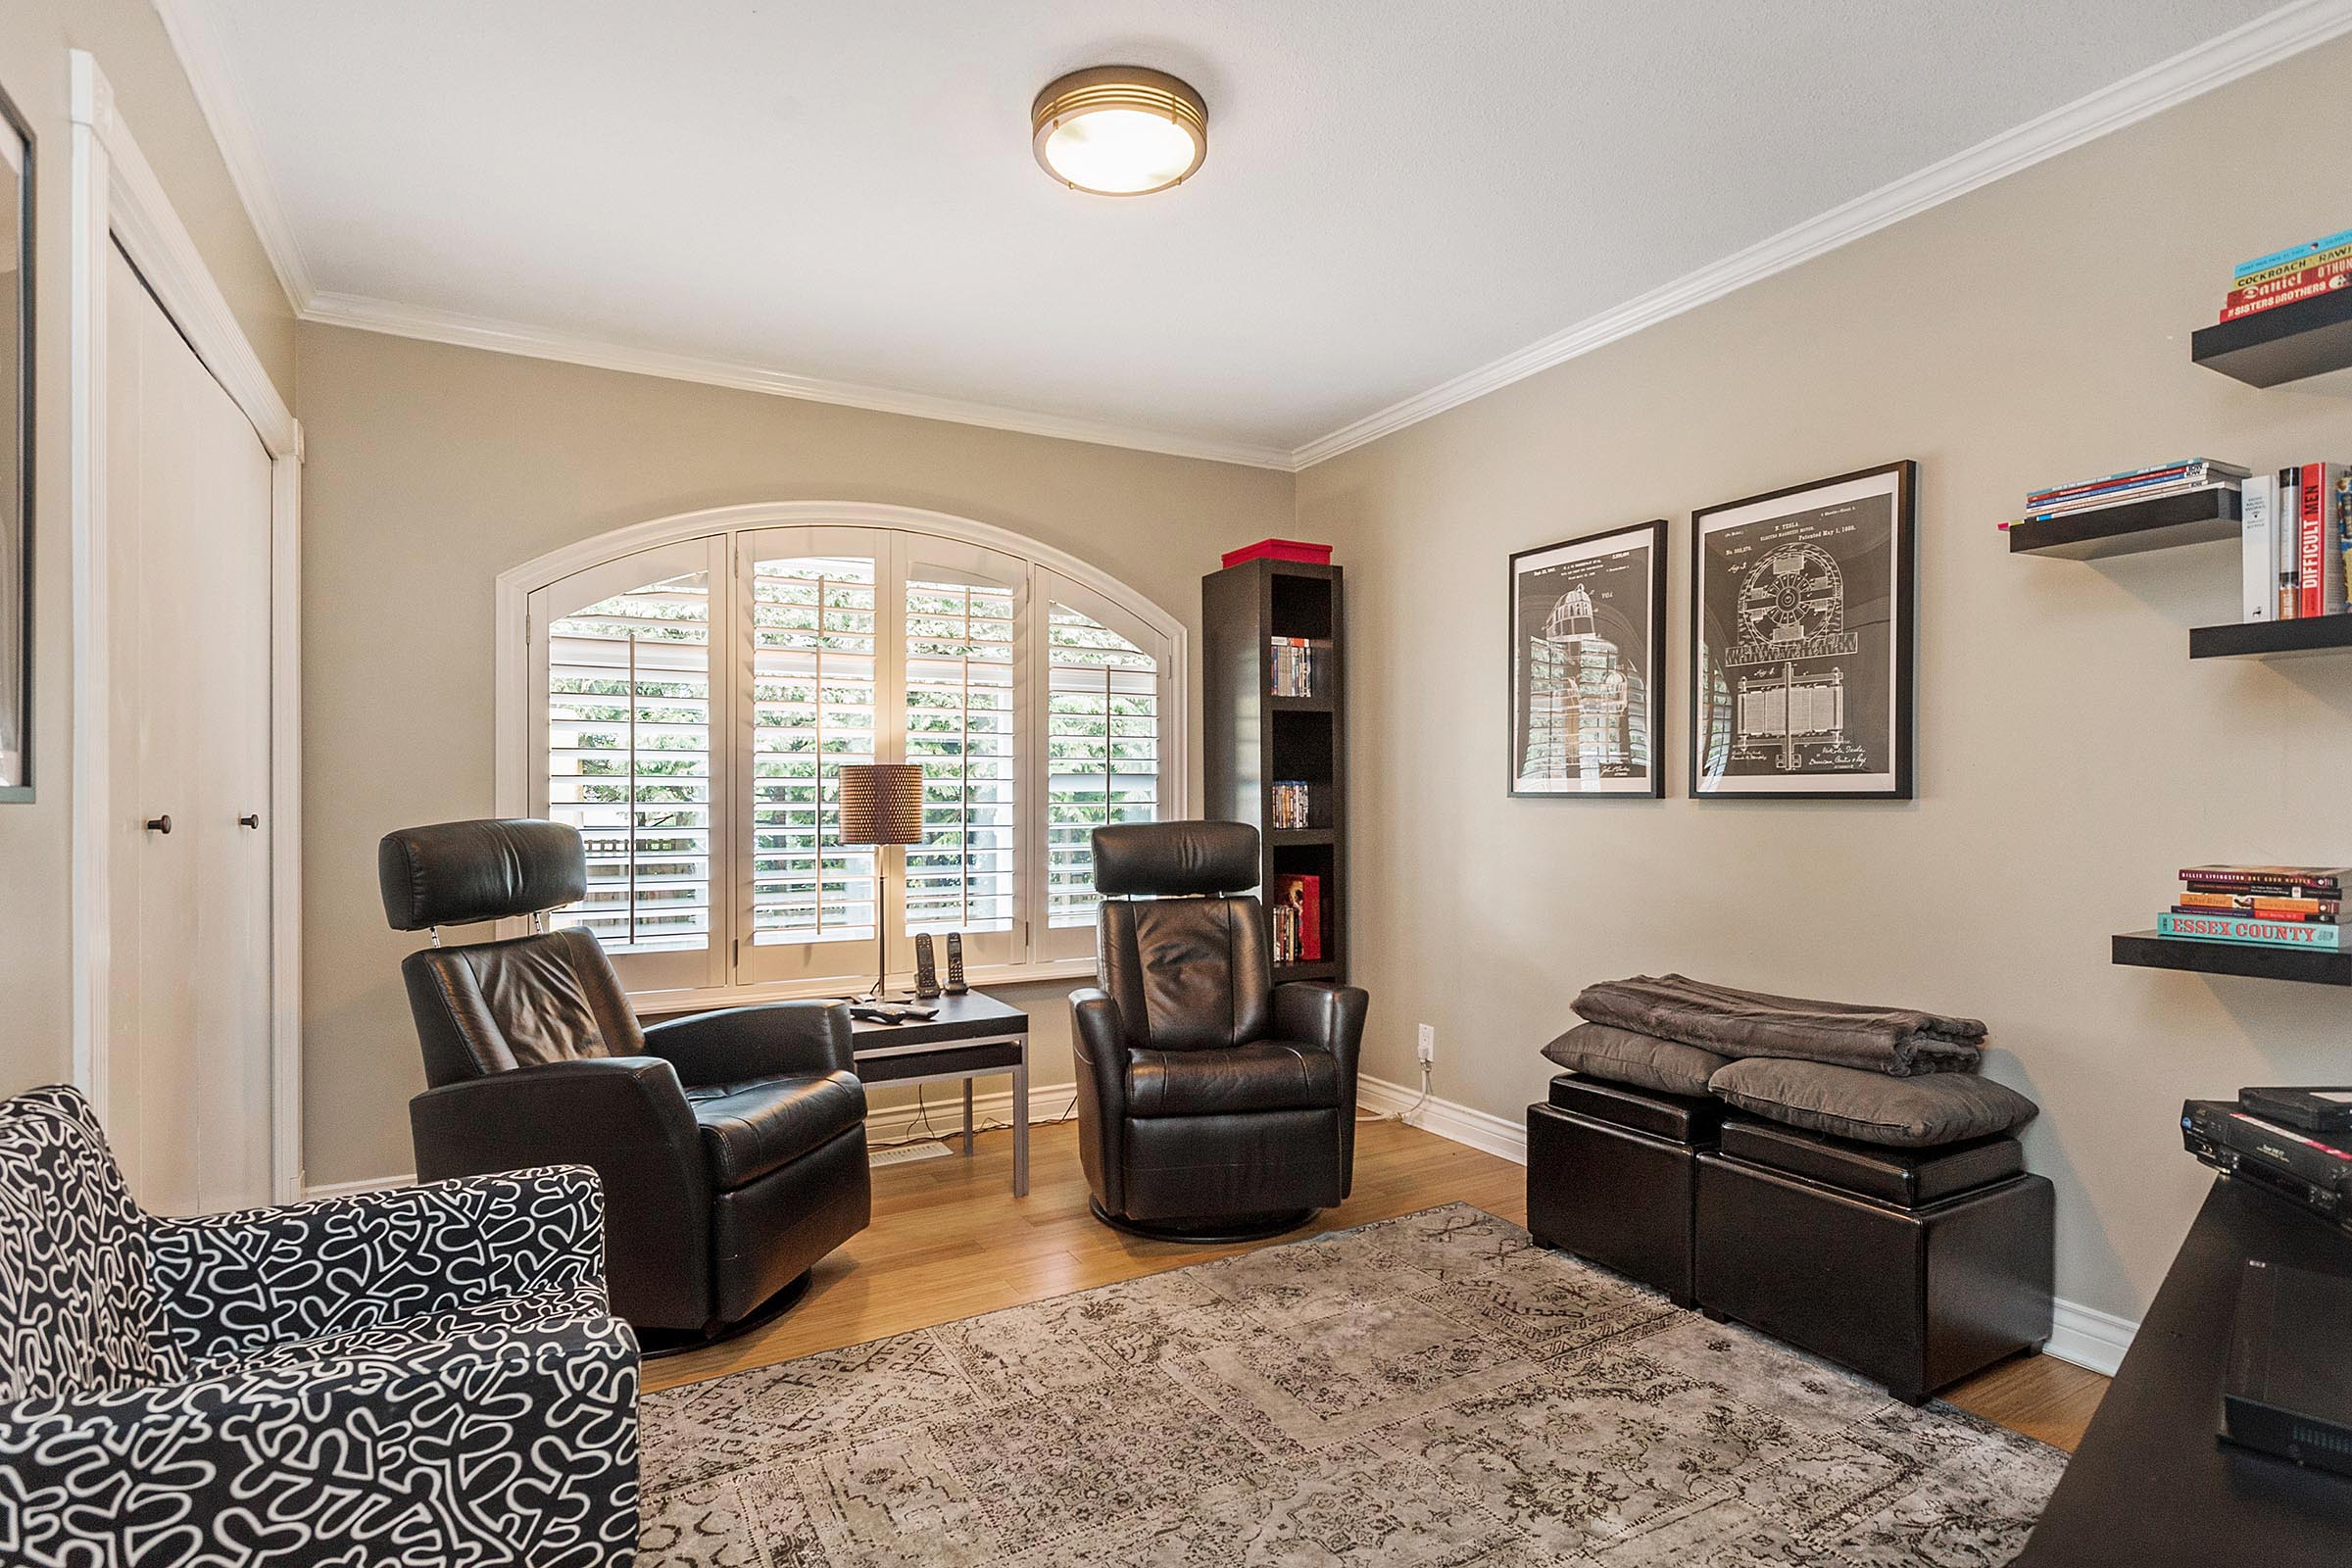 Virtual Tour of 20550 46A AVENUE, Langley, MLS # R2139009, Langley